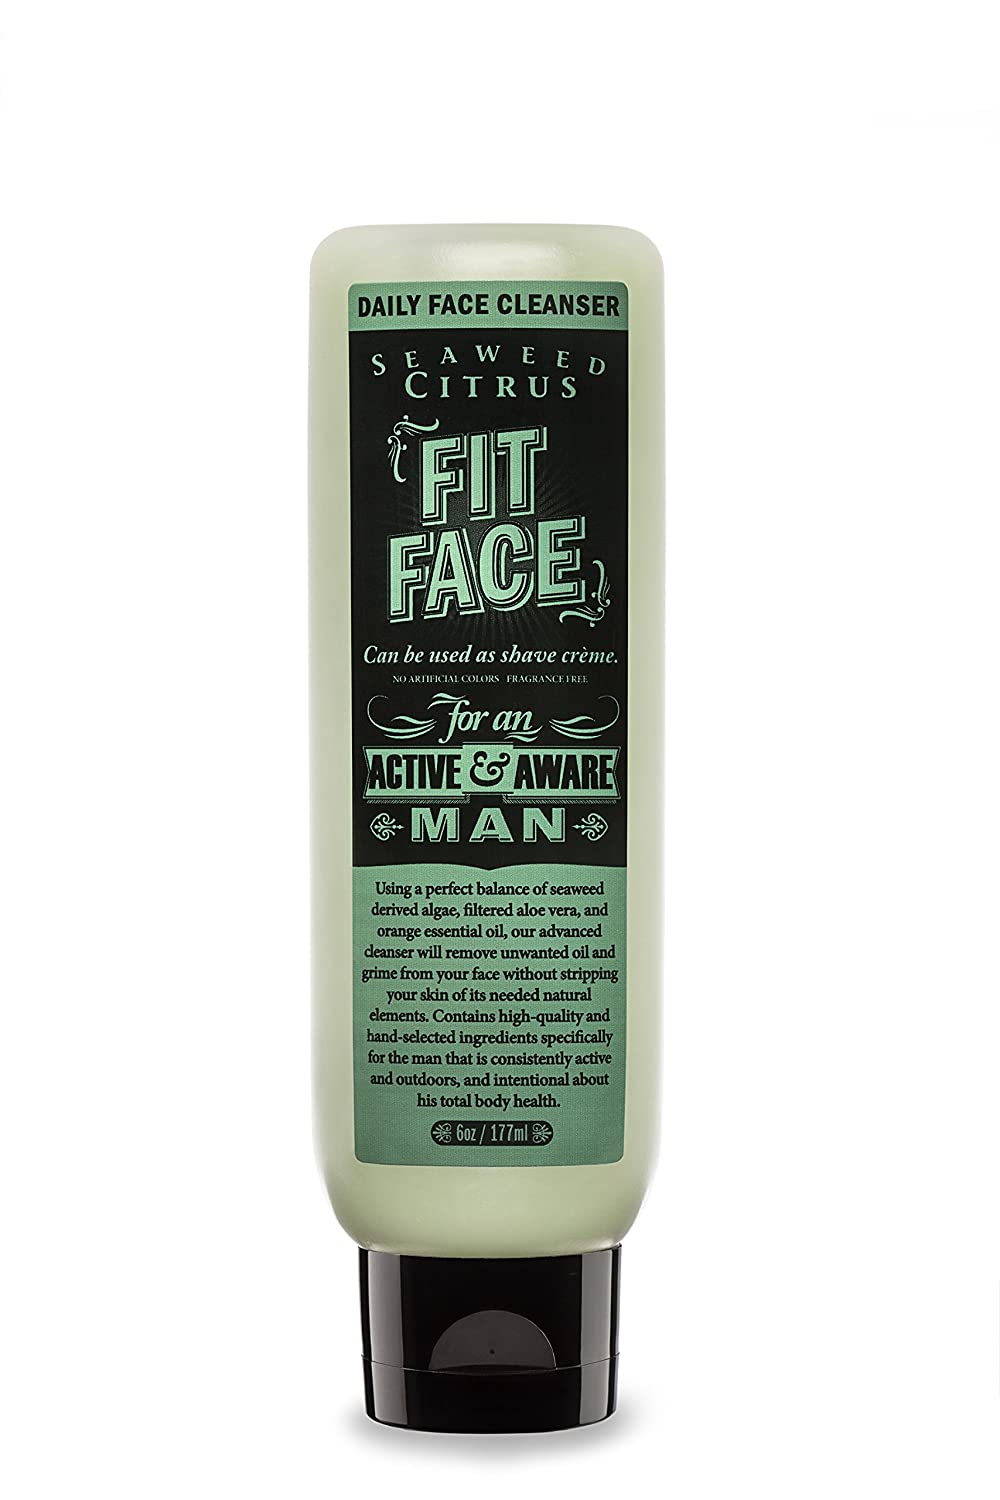 FIT FACE Seaweed Citrus Daily Face Cleanser | Non-Foaming Daily Wash for Men with Anti-Aging and Moisturizing Effects | Won't Dry or Damage Your Face | Natural Ingredients | For all Skin Types | 6 oz